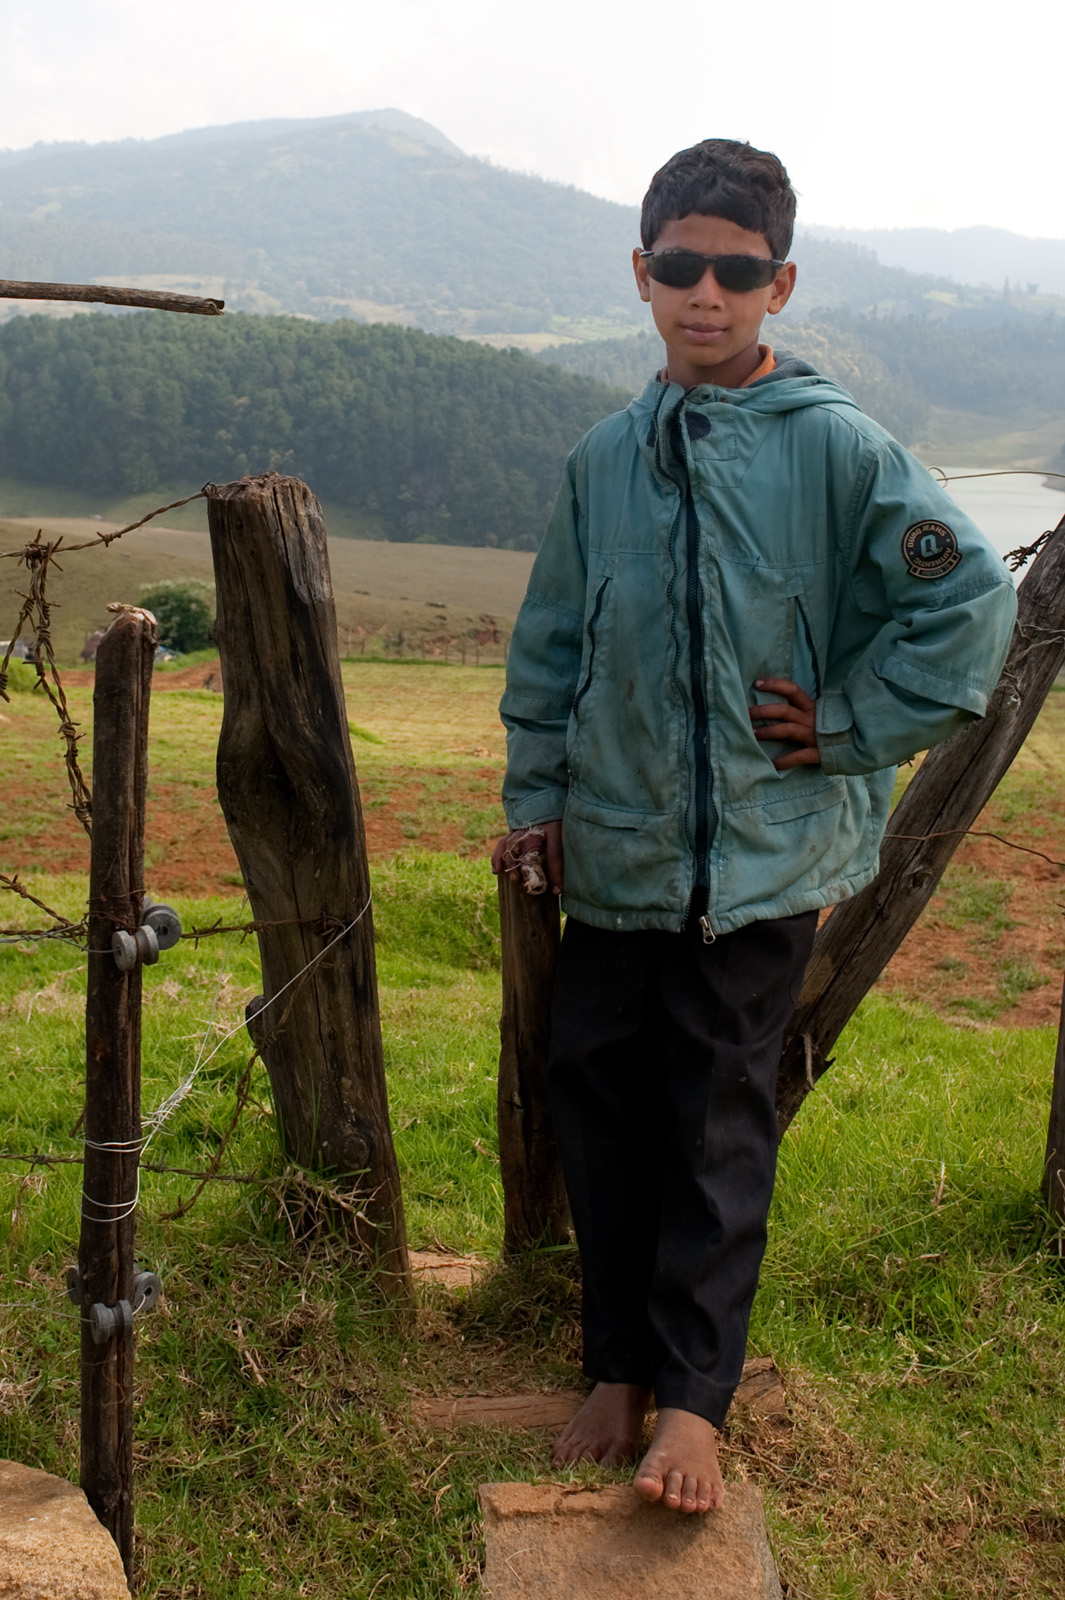 A portrait from a walk in the Nilgiri Hills around Ooty, Tamil Nadu, India